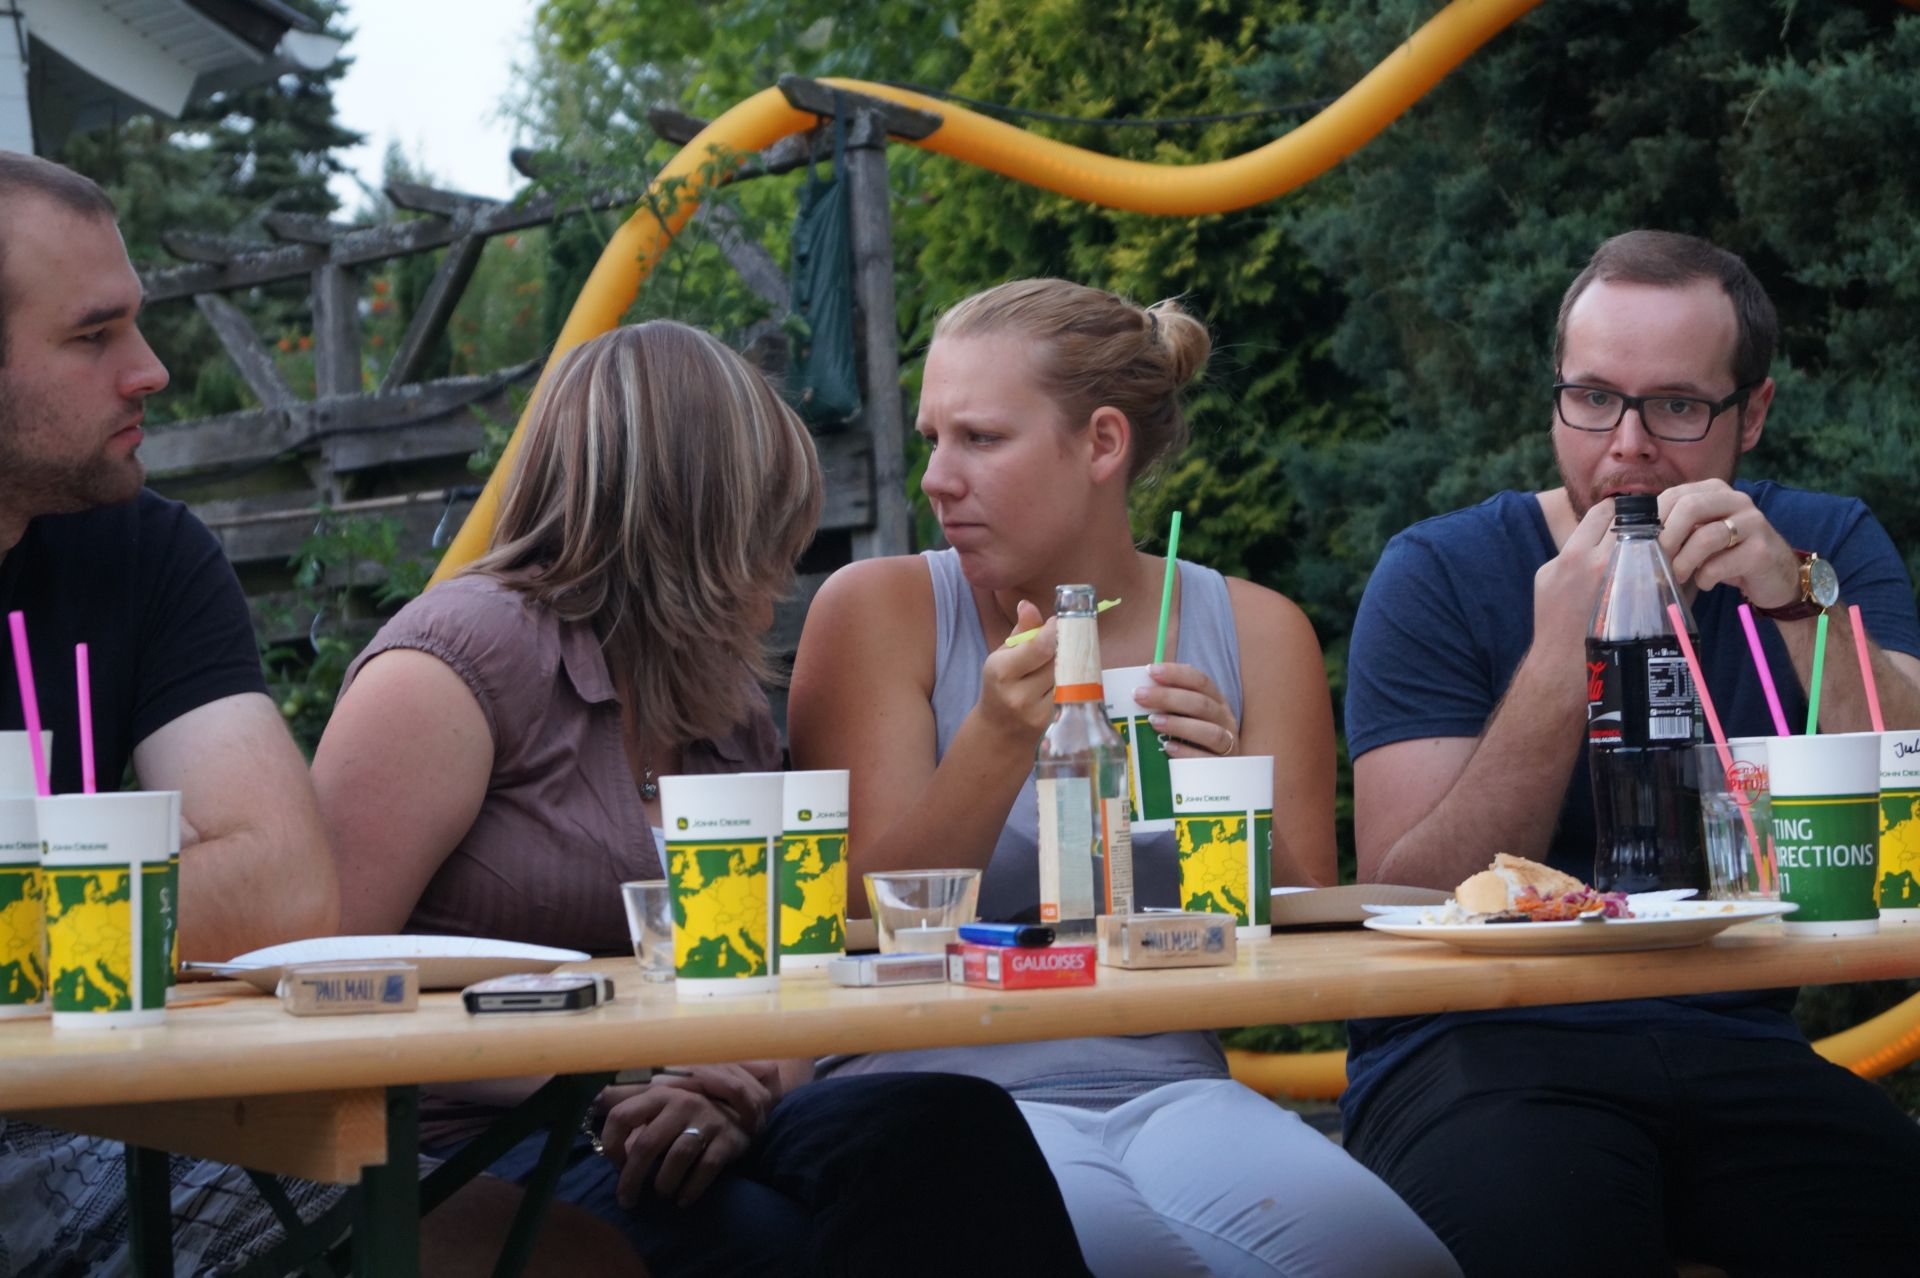 2015_Poolparty_46_DSC00879